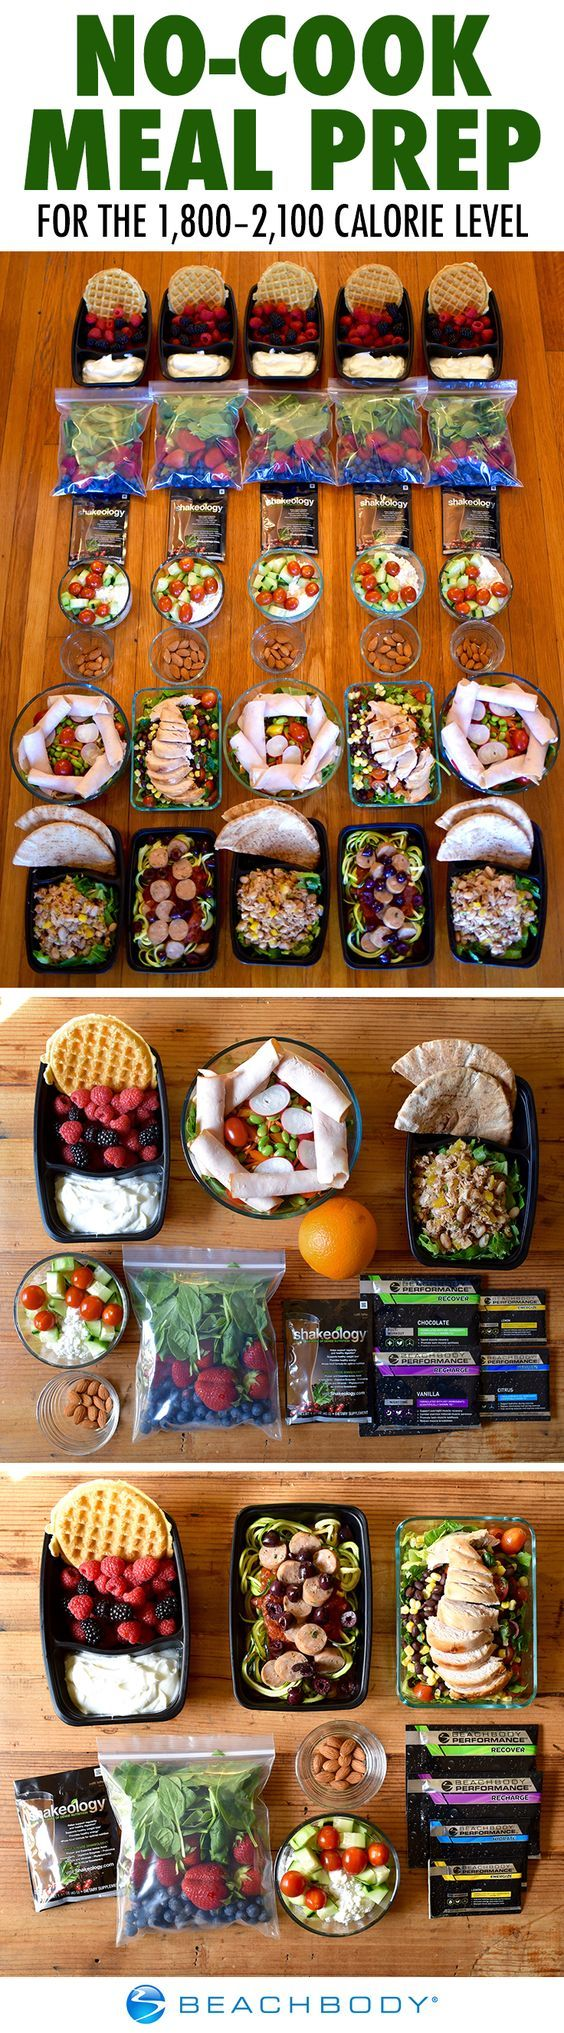 This no-cook menu is based on the color-coded Portion Fix container system that helps you eat the proper combination of protein, carbs, fruits and vegetables, and healthy fats every day. It follows the 1800-2100 calorie level, though those following the 22 Minute Hard Corps nutrition plan at this calorie level should add two extra red containers and one tsp.